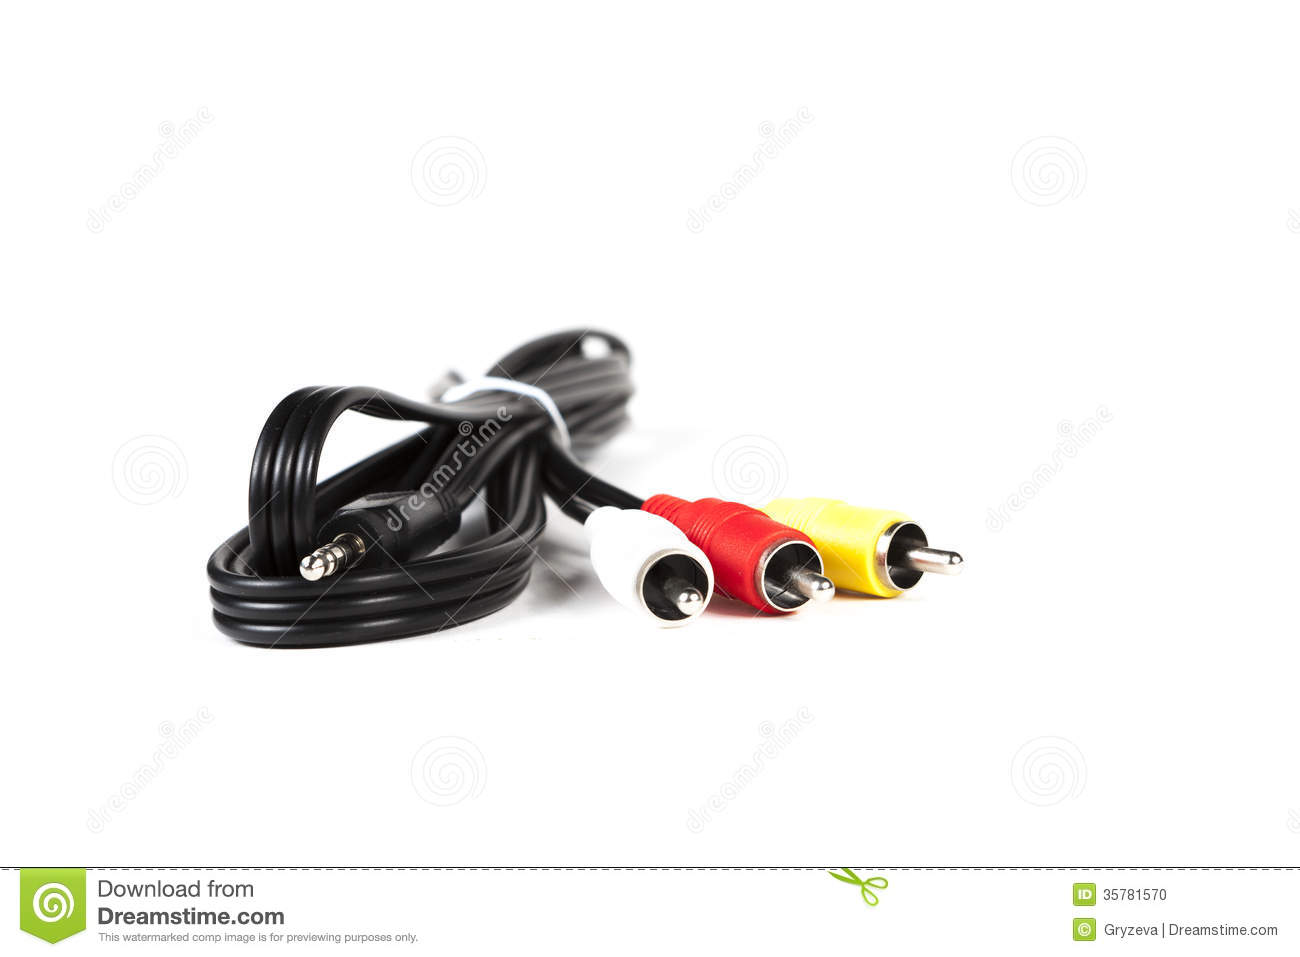 Rca Cable Connectors Isolated On A White Background Stock